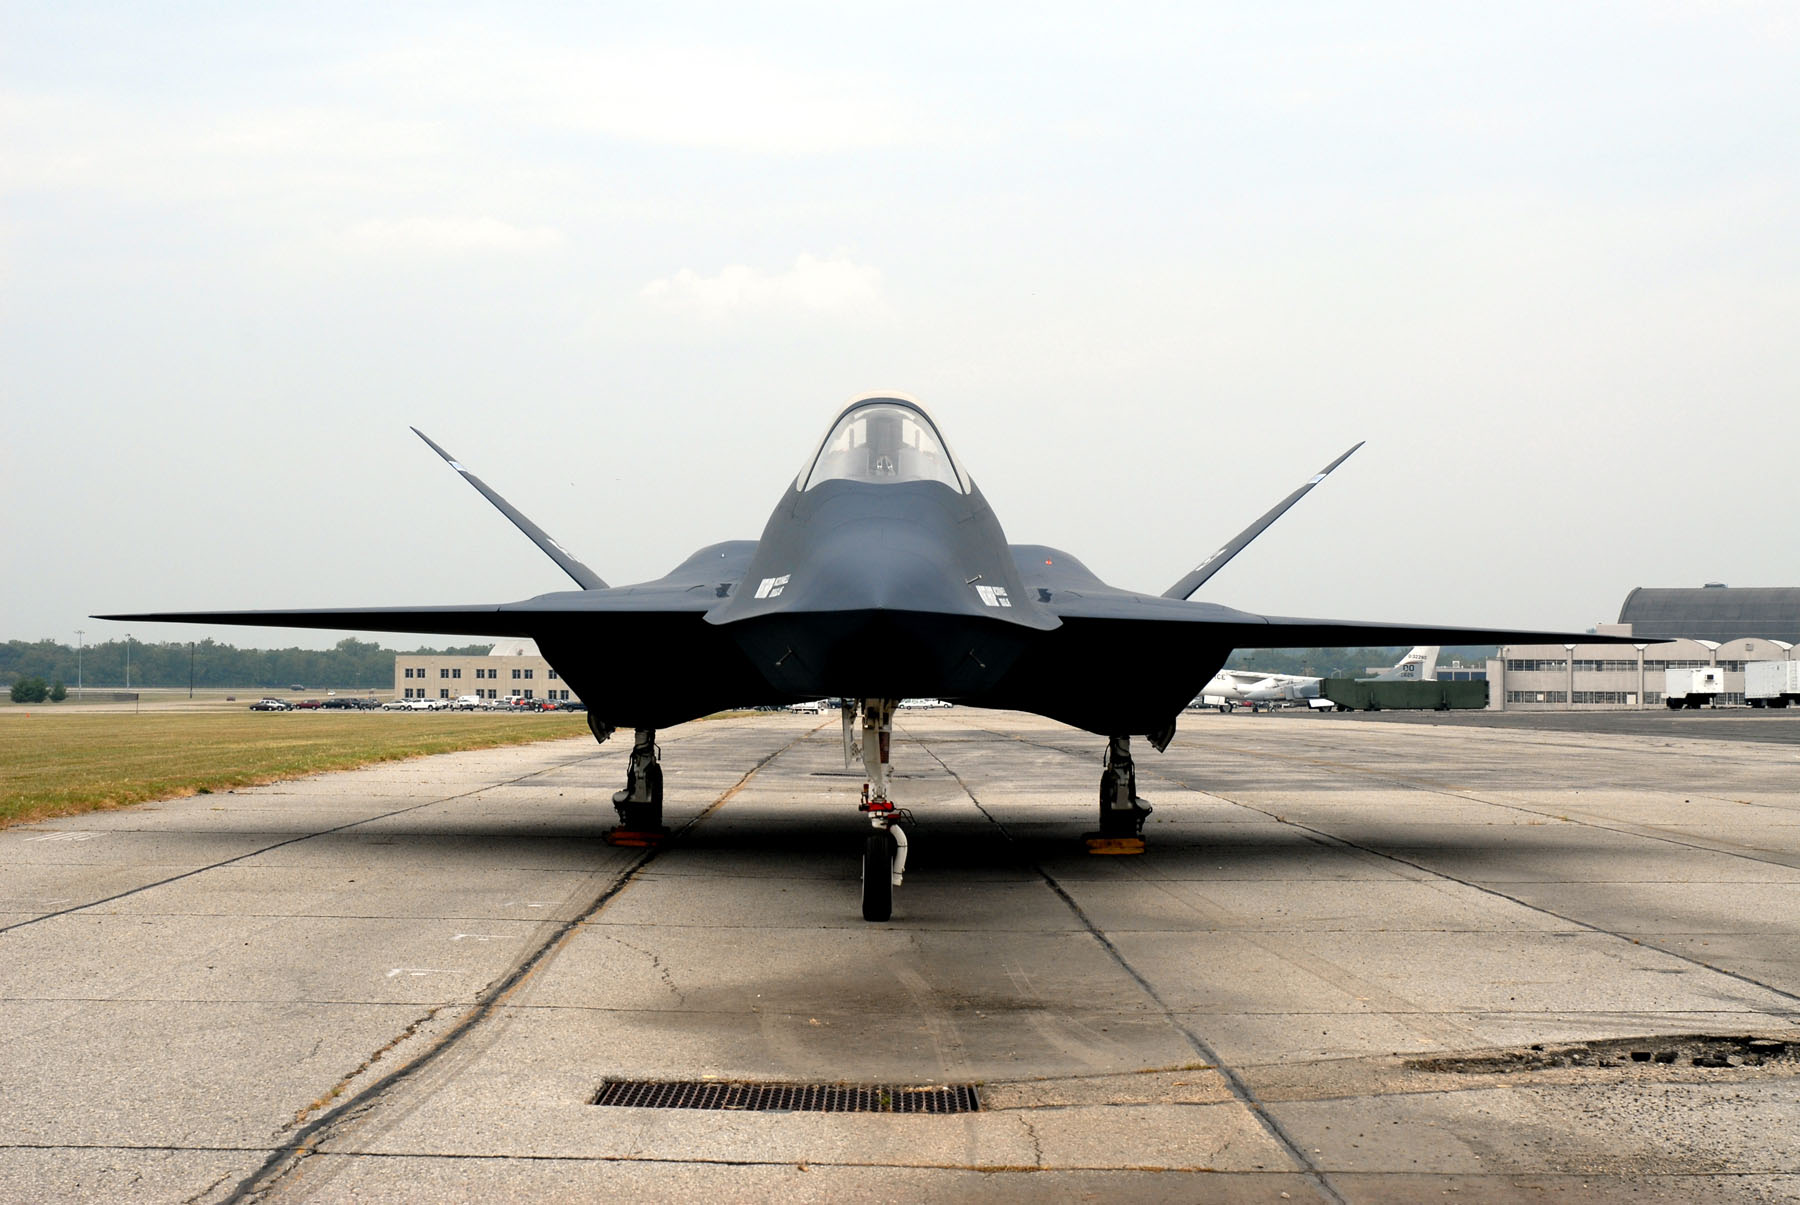 The F-23 Stealth Fighter: A Revolutionary Fighter Jet That Was Passed